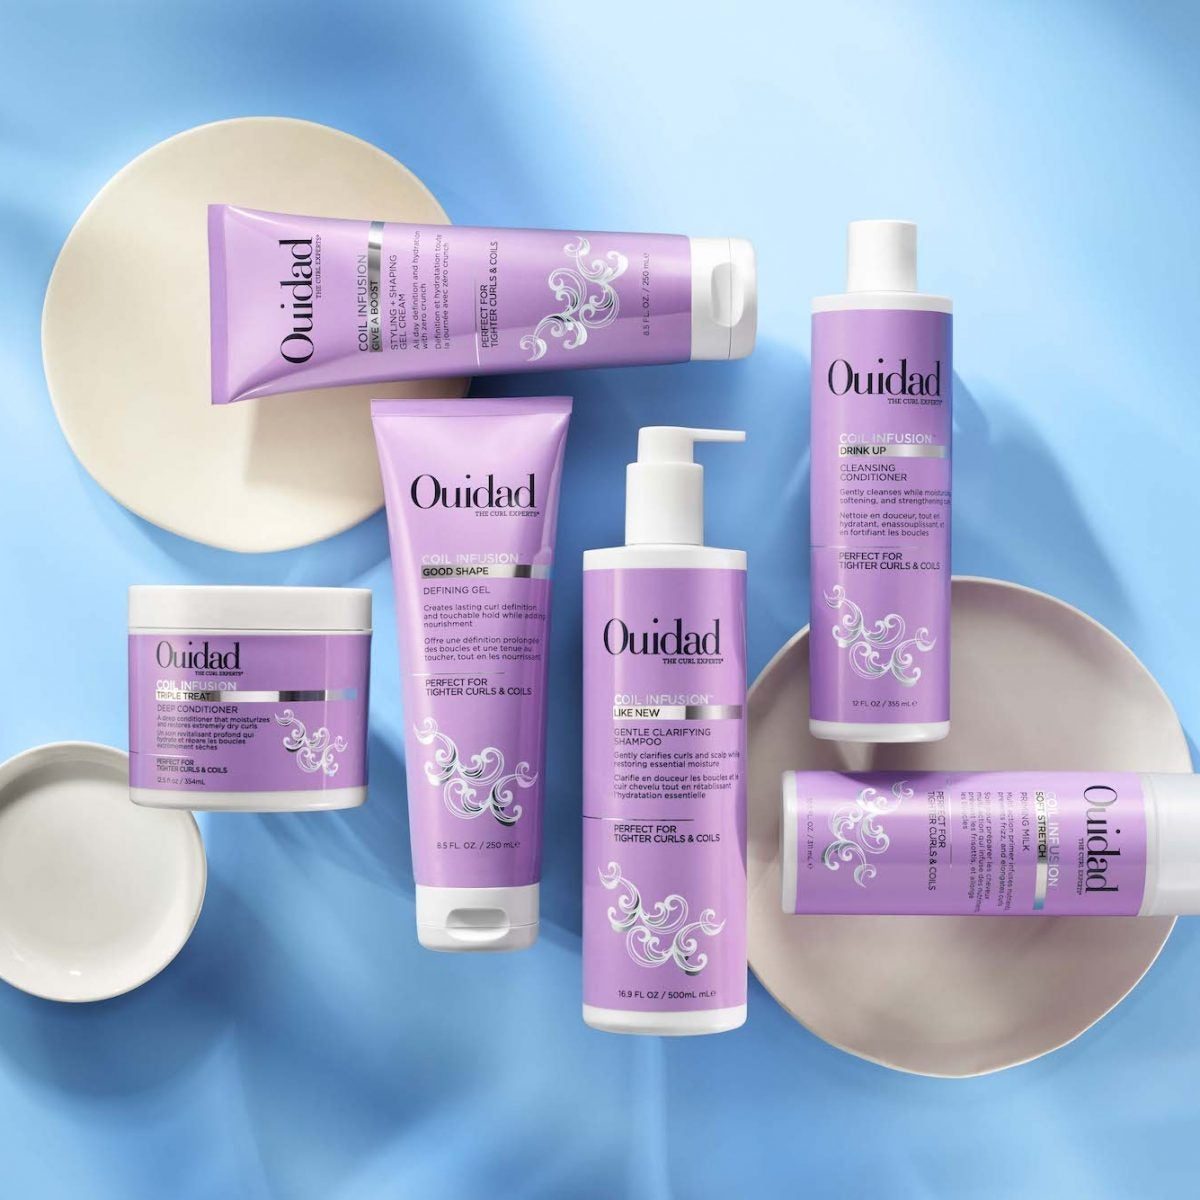 If Your Curls Need More Moisture, Ouidad's New Coil Infusion Collection Is A Dream Come True